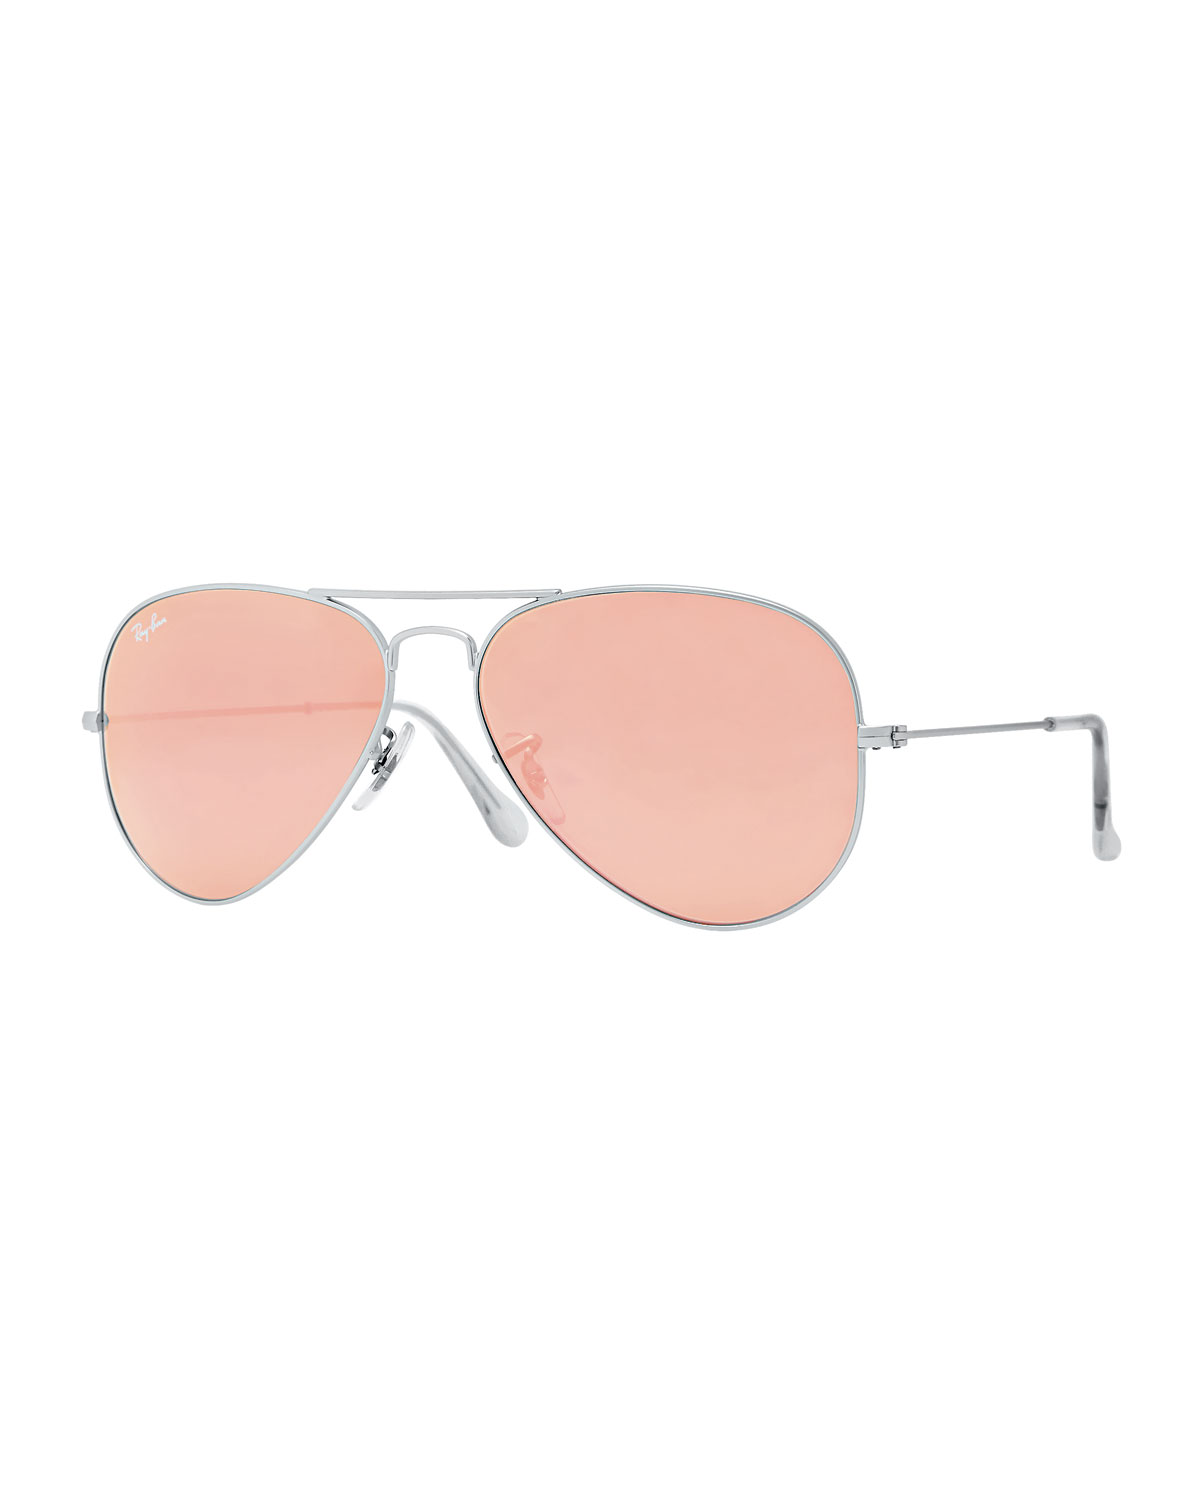 ray ban reflective aviators